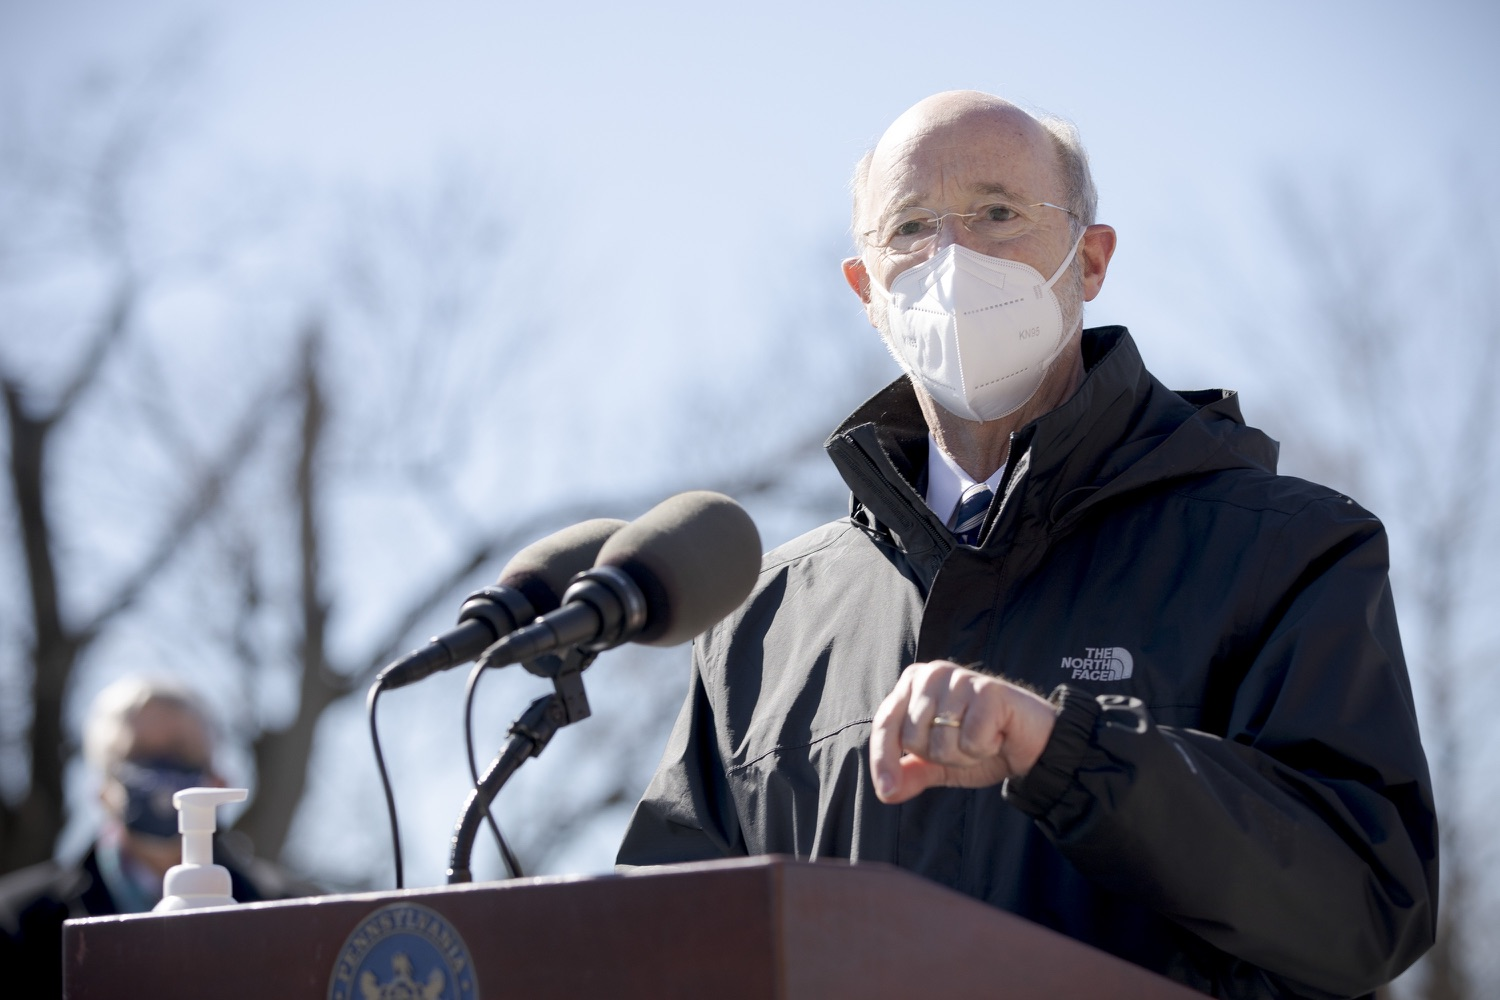 "<a href=""https://filesource.wostreaming.net/commonwealthofpa/photo/18560_gov_chirp_dz_11.jpg"" target=""_blank"">⇣ Download Photo<br></a>Pennsylvania Governor Tom Wolf answers questions from the press.  Governor Tom Wolf announced today that the hospitality industry will soon be able to apply for immediate relief through the COVID-19 Hospitality Industry Recovery Program (CHIRP), a new grant program established by the Wolf Administration to support local businesses in the hospitality industry that were affected by the COVID-19 pandemic. Harrisburg, PA  March 2, 2021. .."